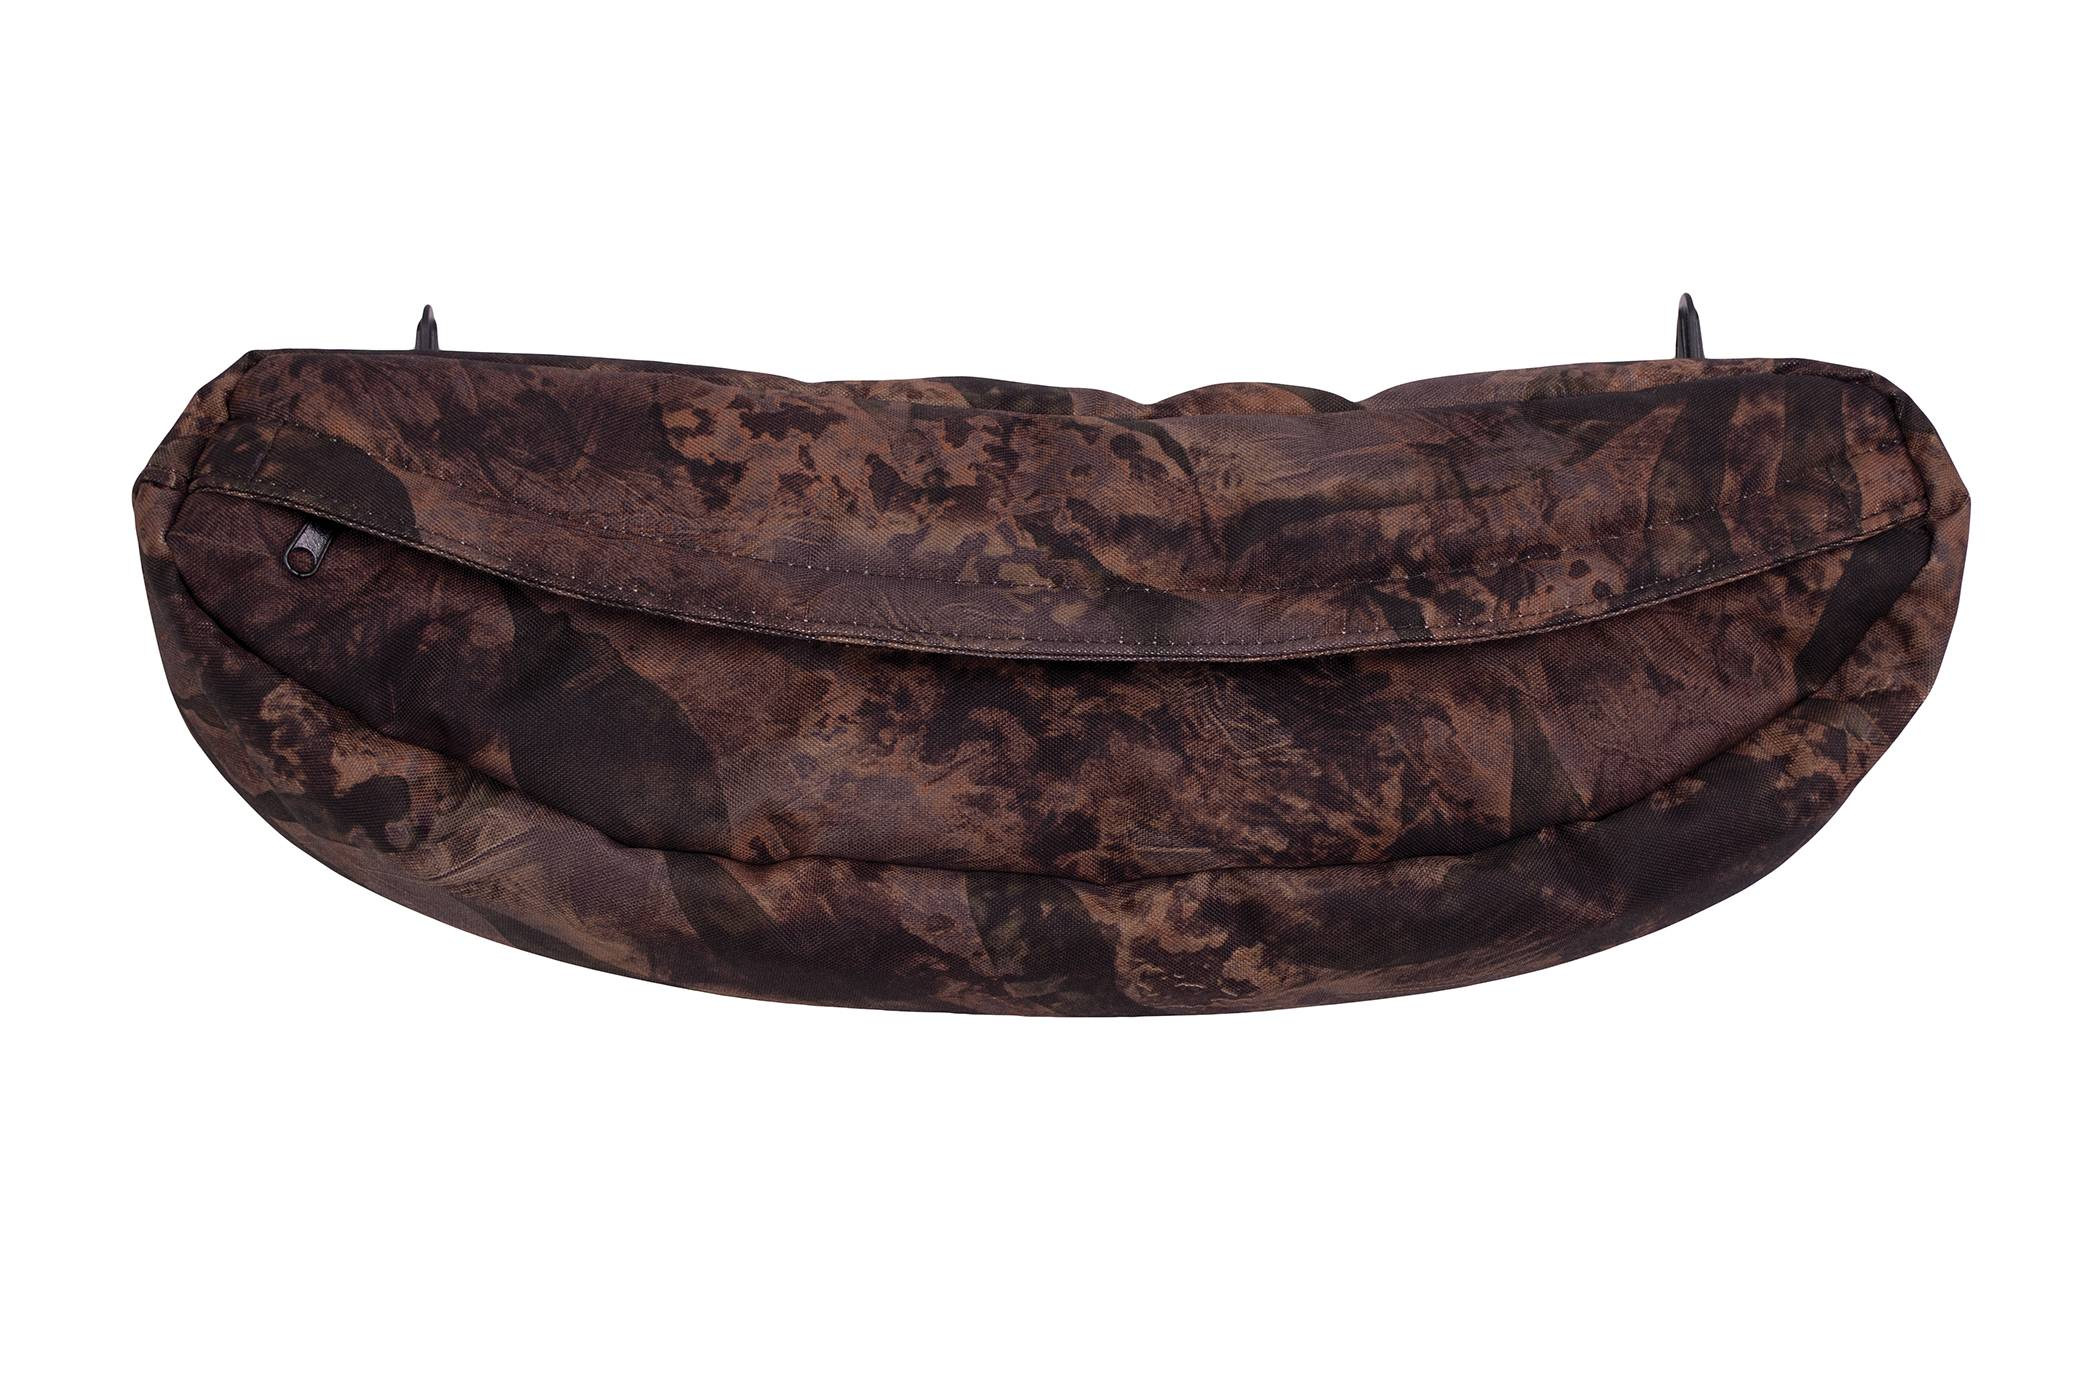 Lami-Cell Wilderness Small Cantle Bag